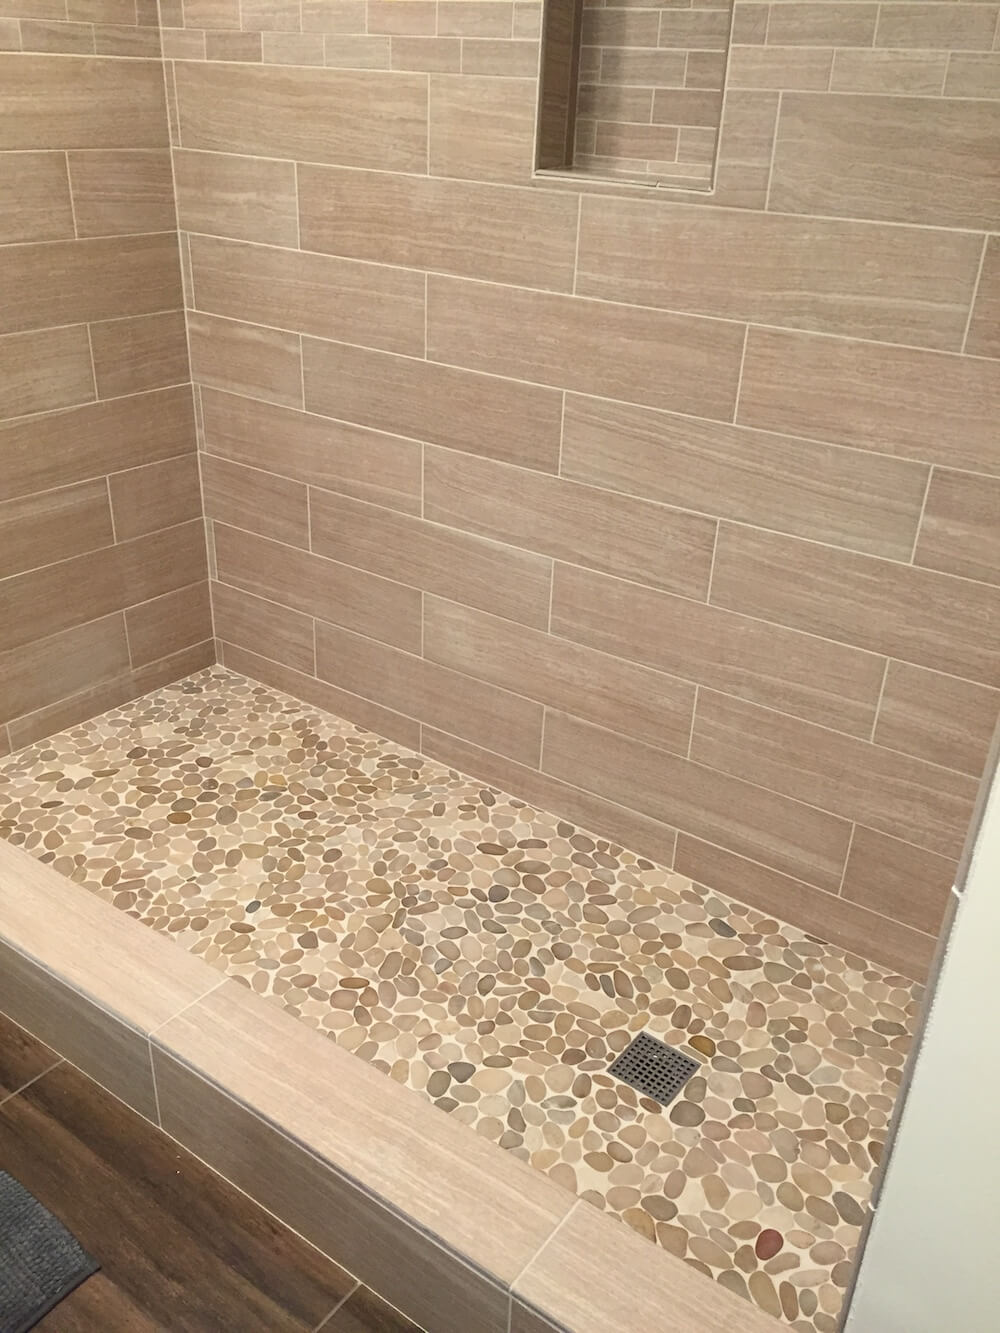 2018 cost to tile a shower how much to tile a shower showing tiling cost factors dailygadgetfo Gallery